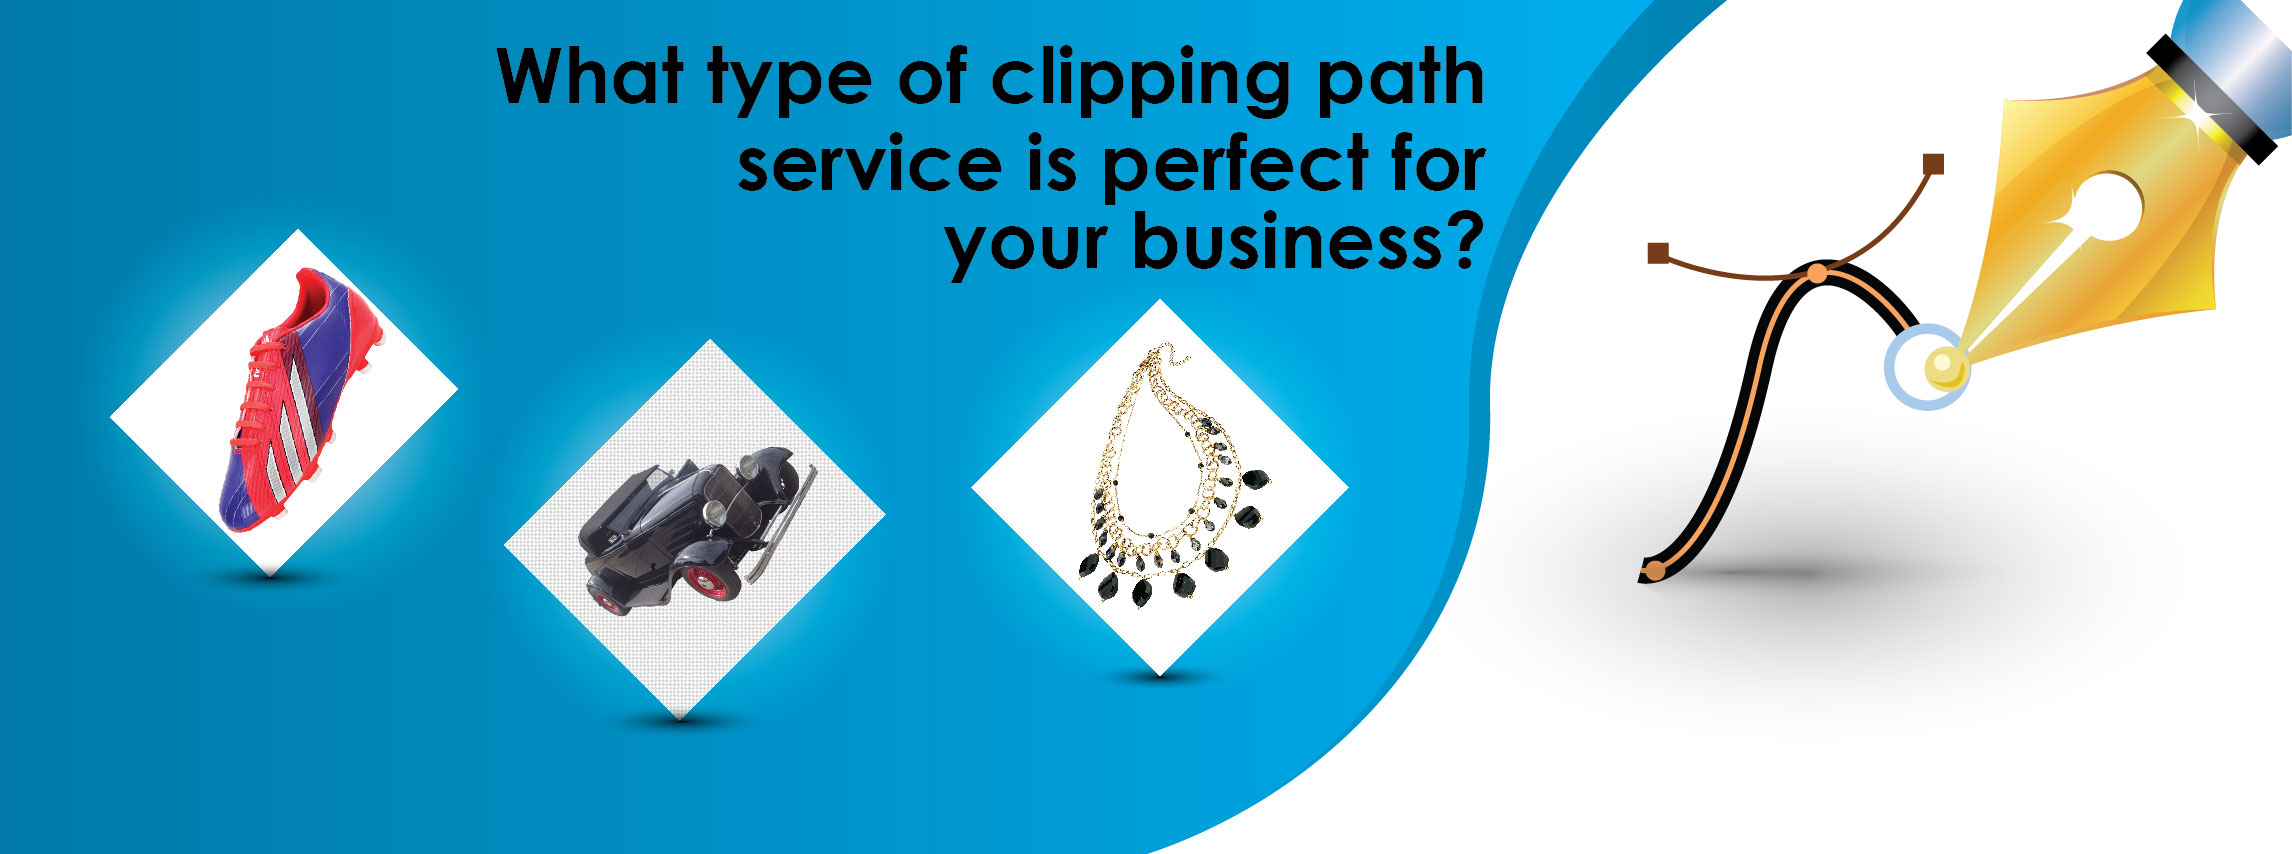 What type of clipping path service is perfect for your business-01